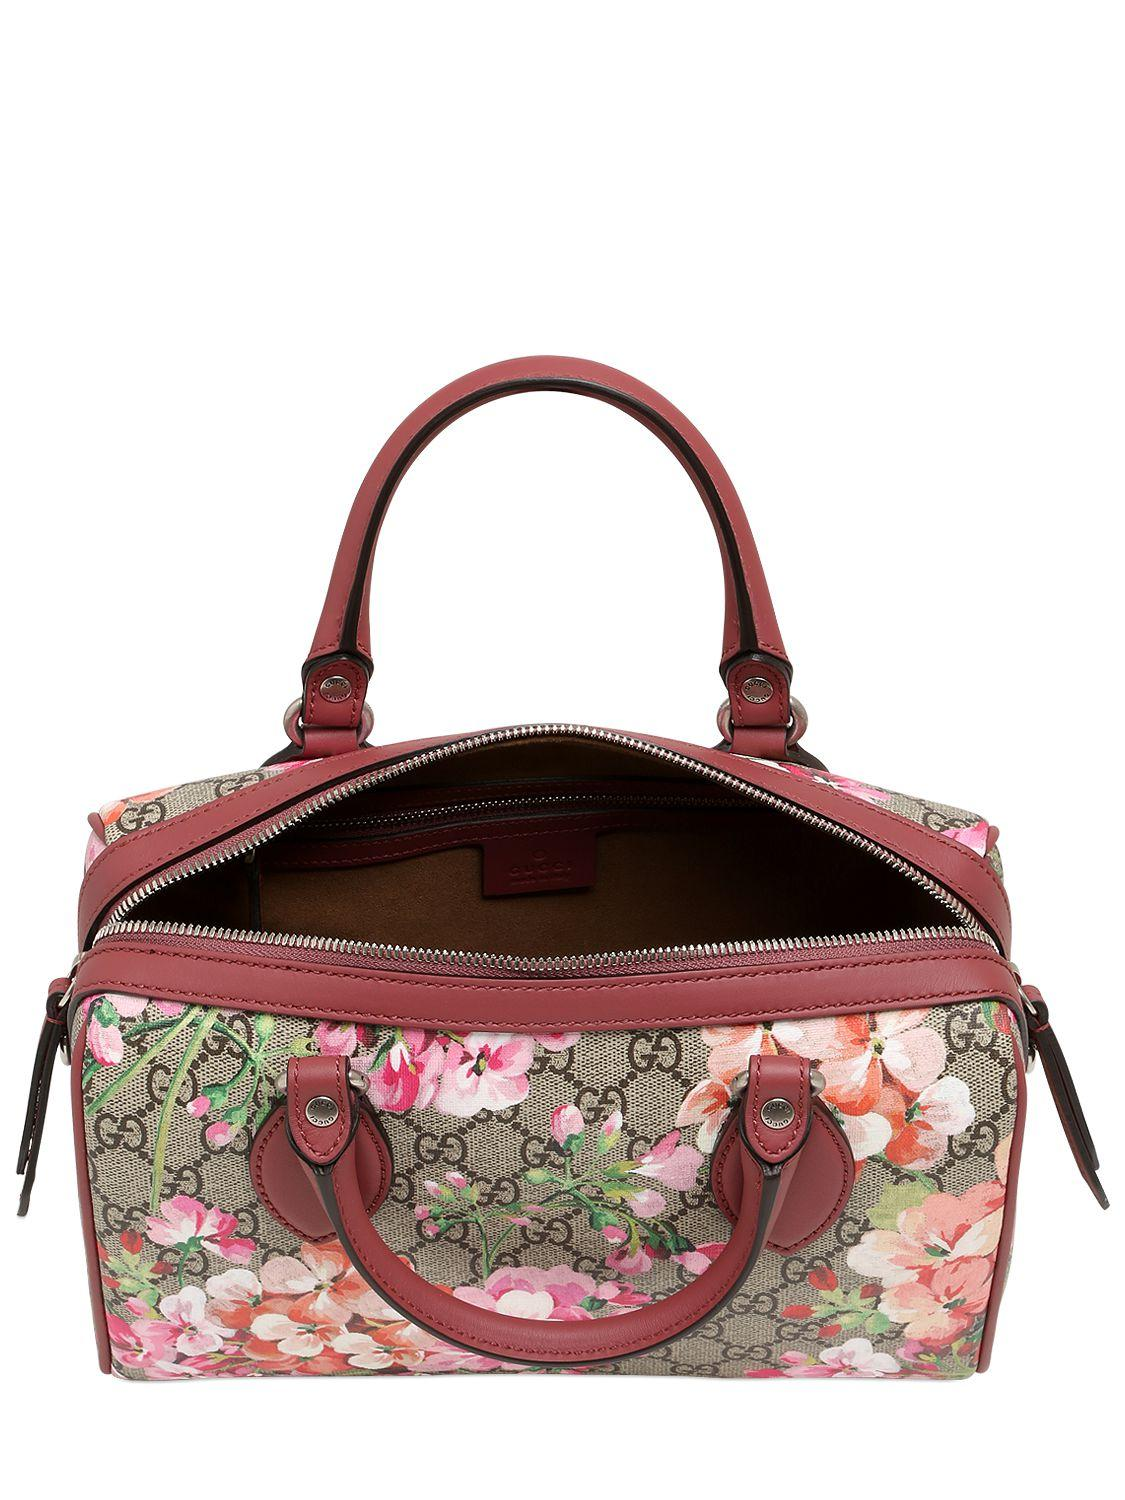 77c55226c85936 Lyst - Gucci Blooms Print Gg Supreme Top Handle Bag in Pink